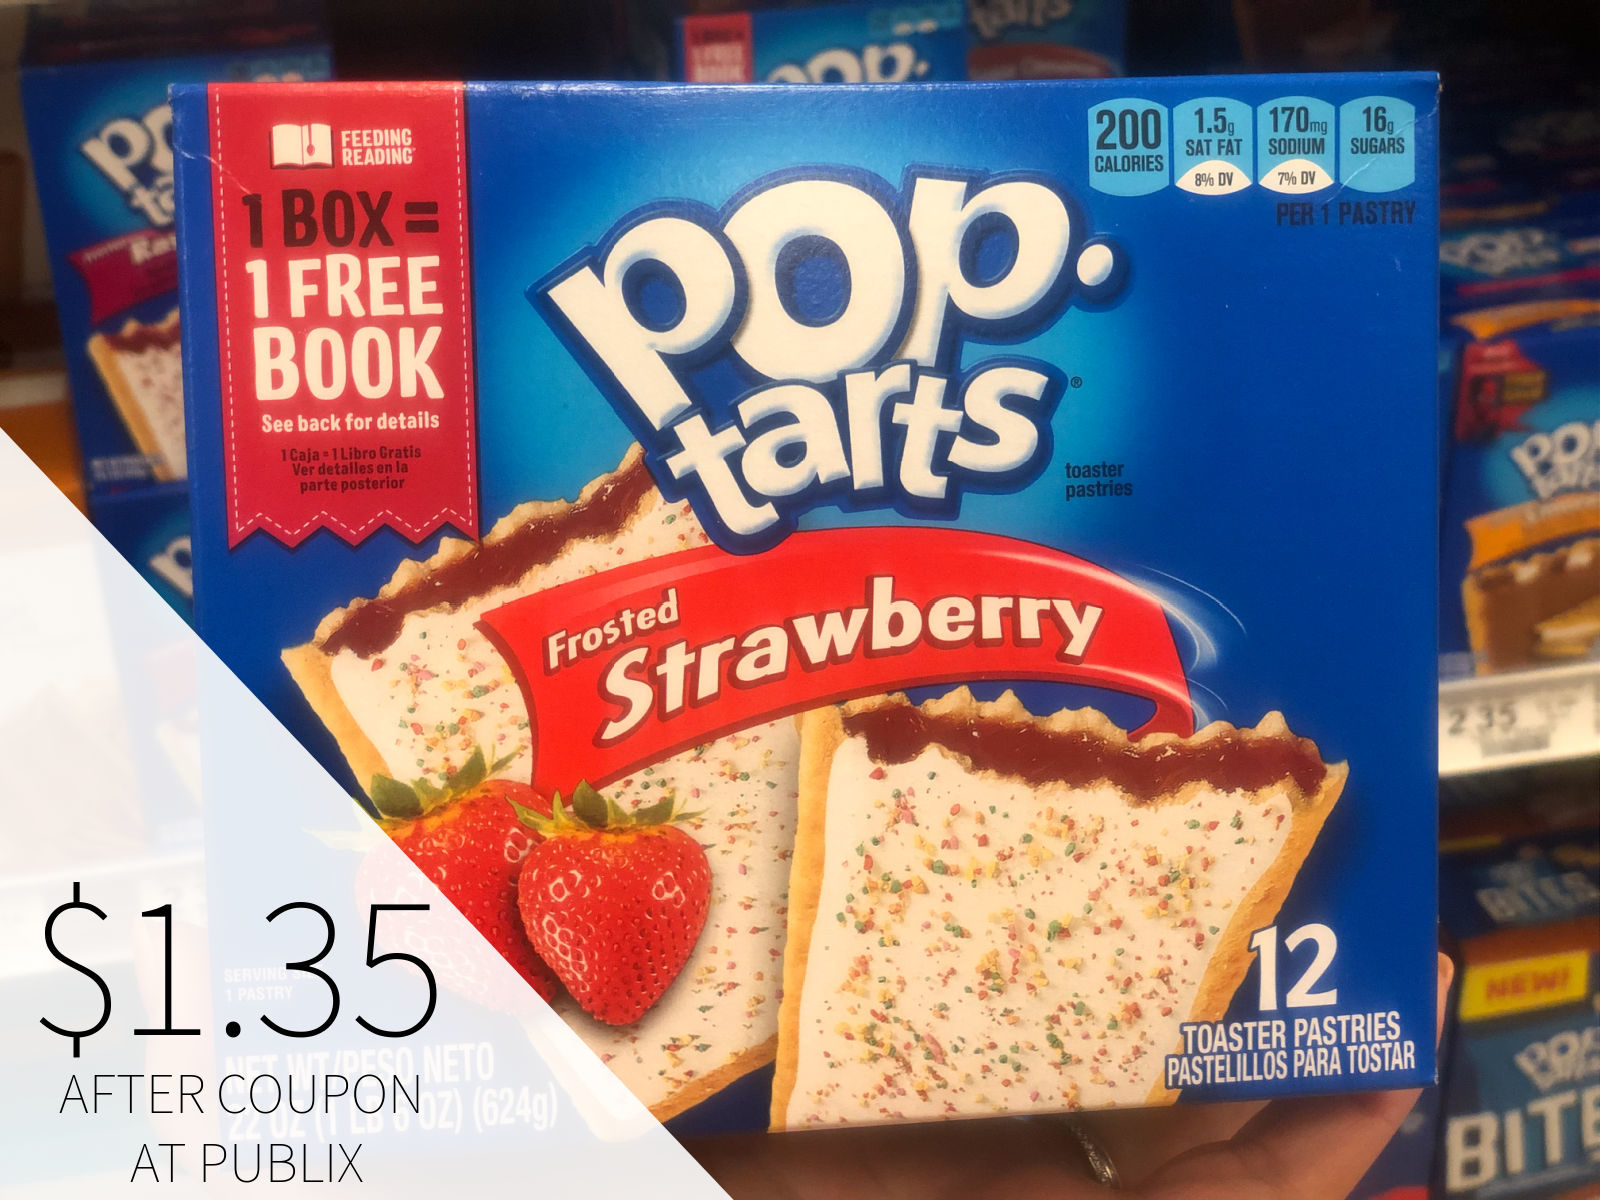 Fantastic Week To Score Free Books With The Kellogg's Feeding Reading Program - Lots Of BOGO Sales At Publix! on I Heart Publix